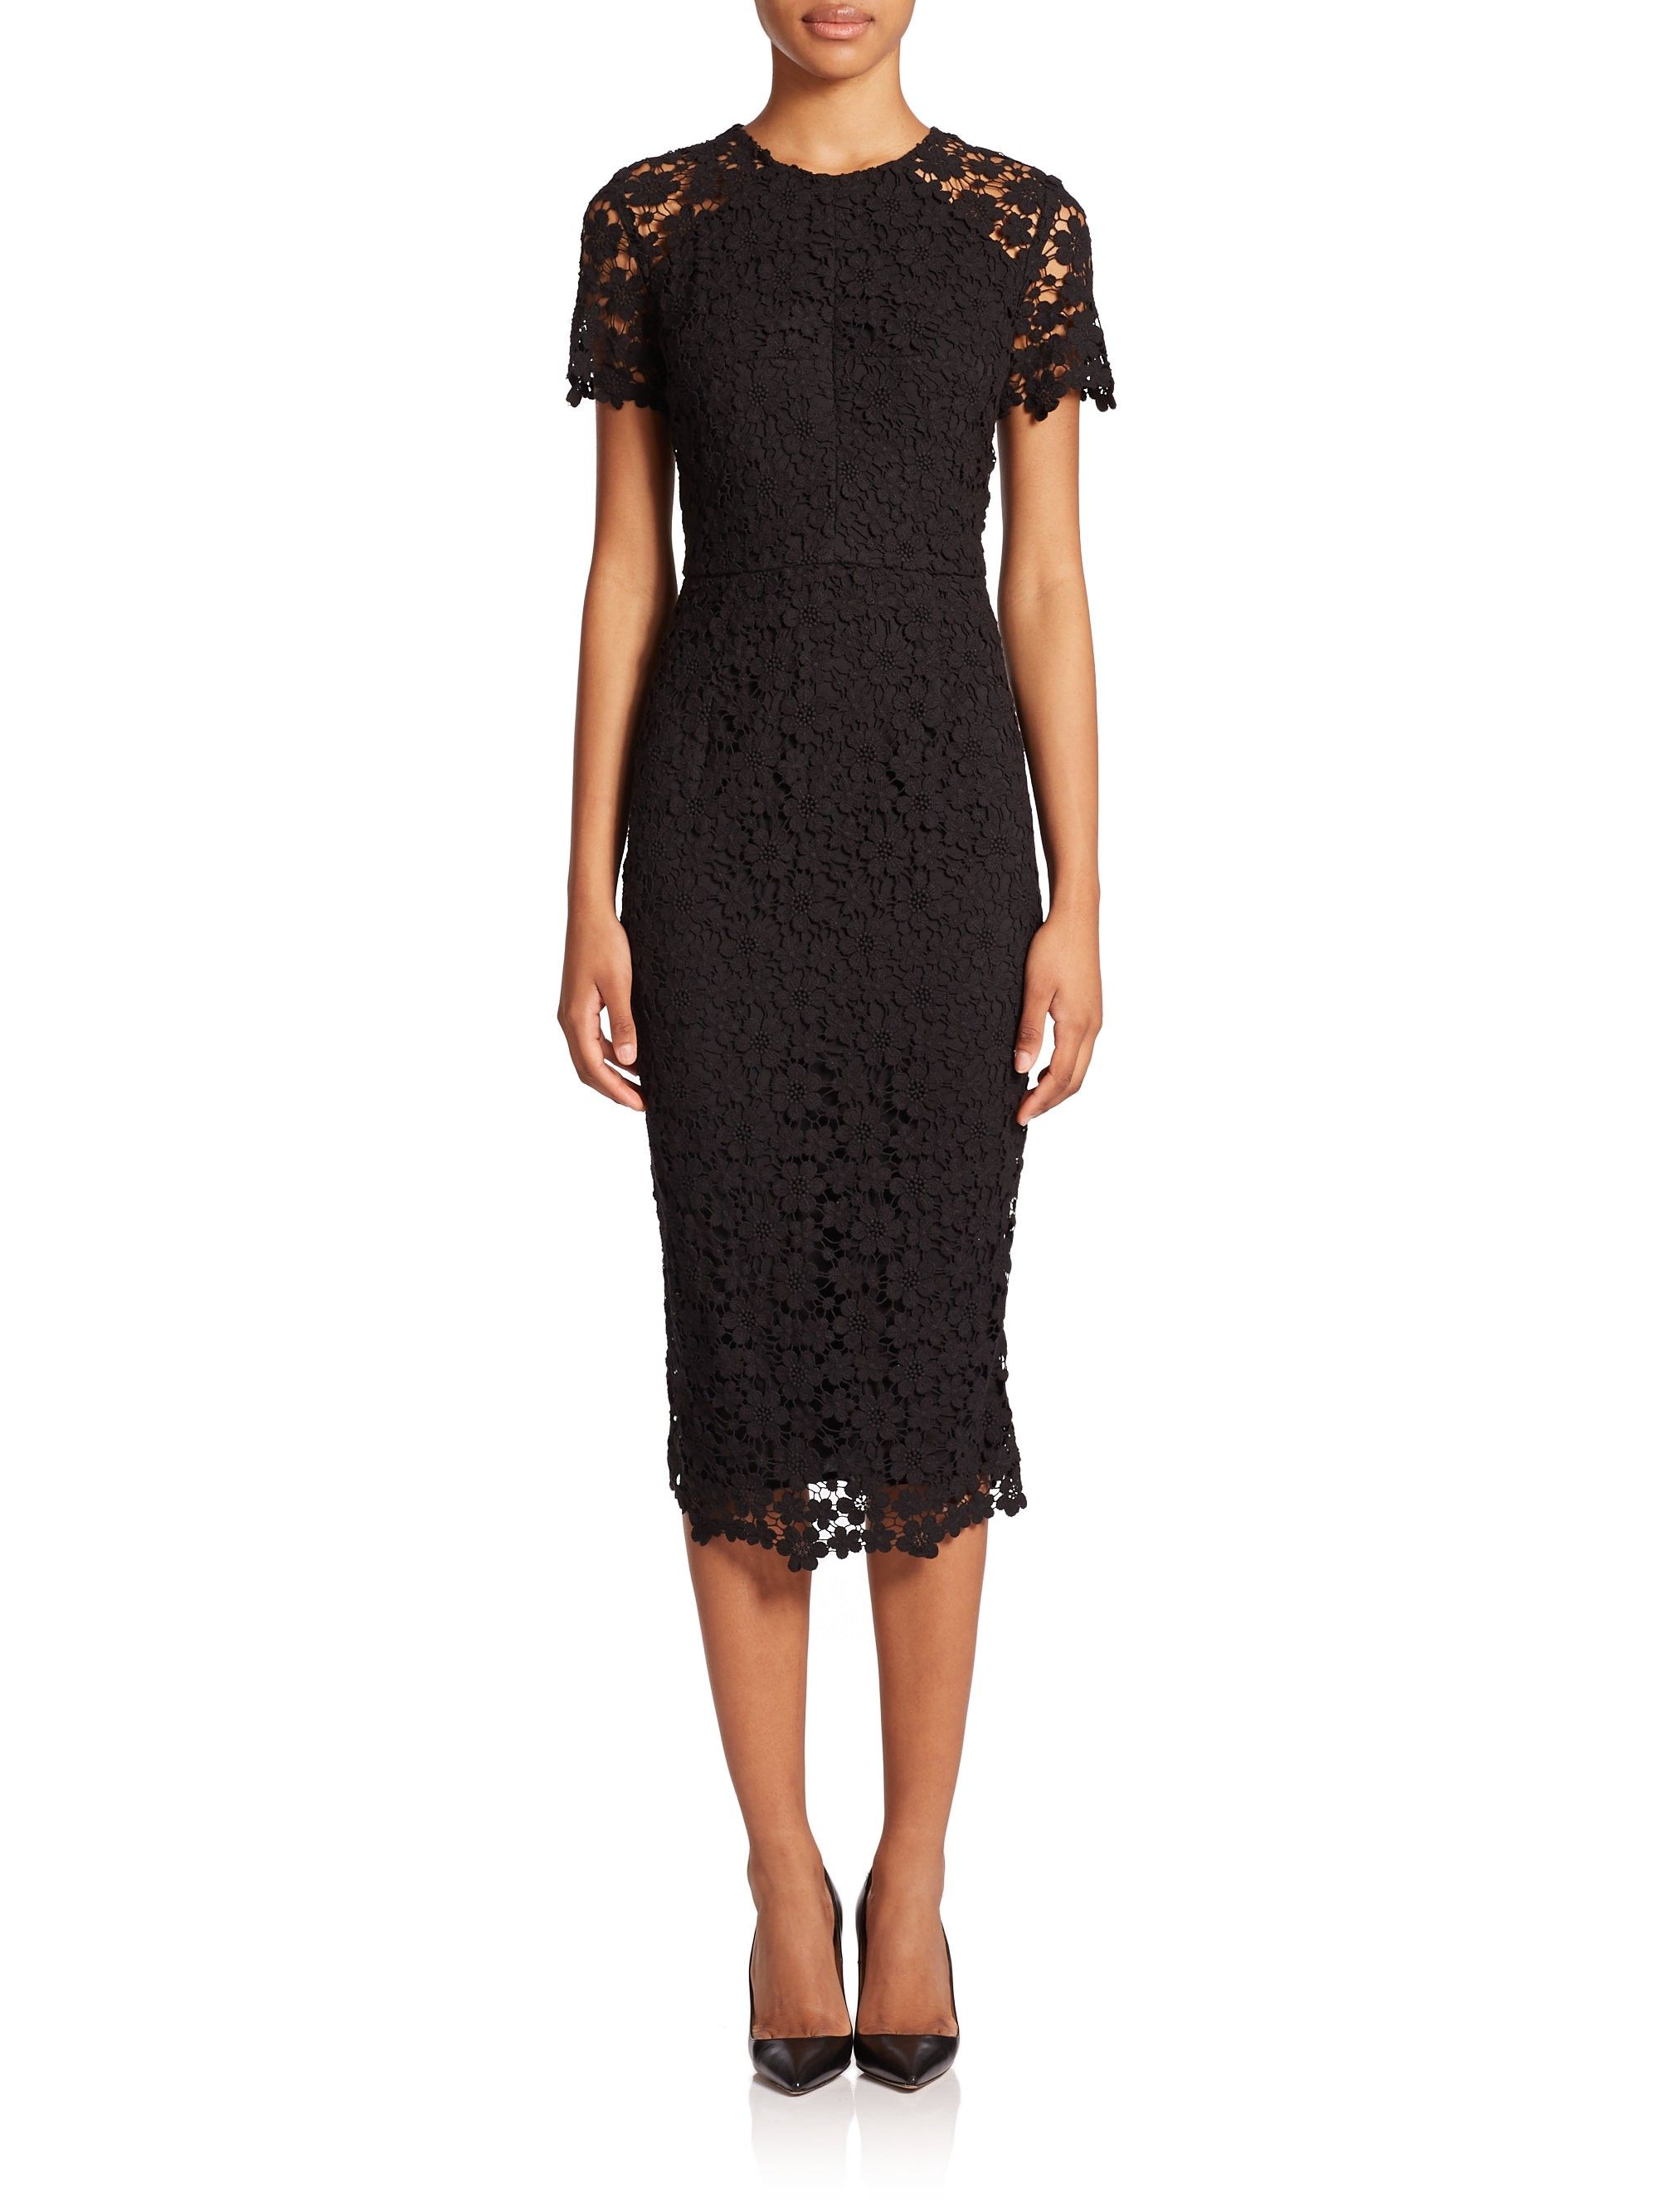 18b08a3ecaf Shoshanna Beaux Guipure Lace Sheath Dress - Jet 2